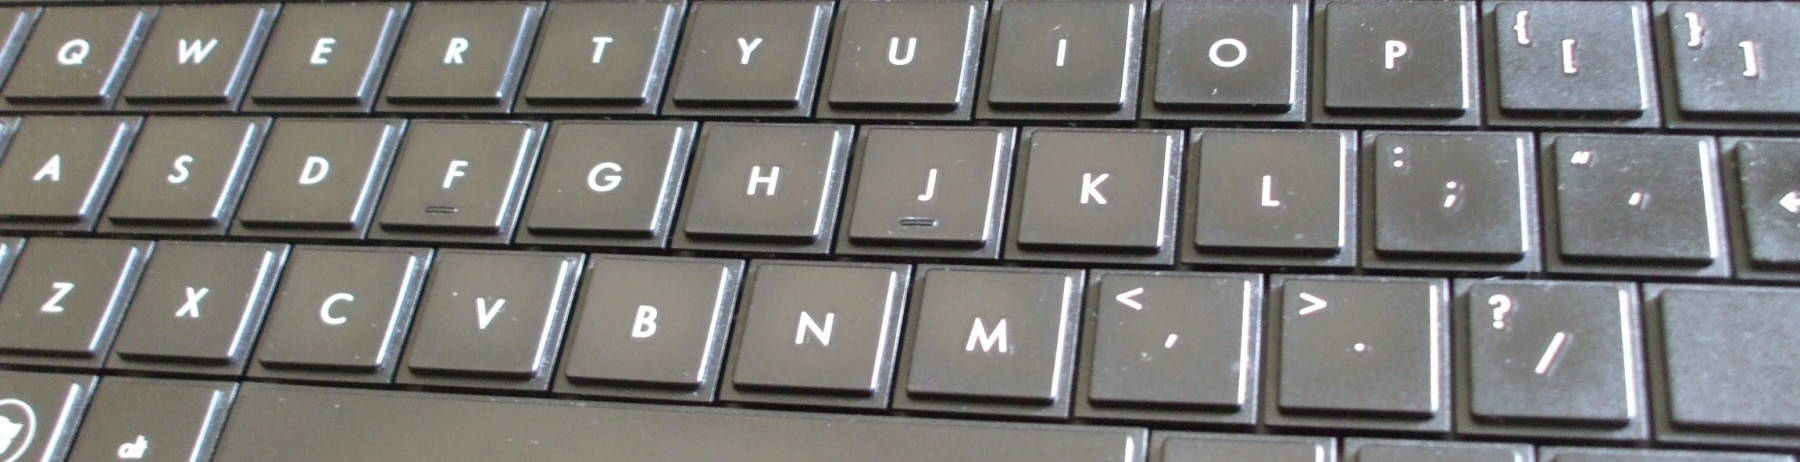 Linux / UNIX keyboard.